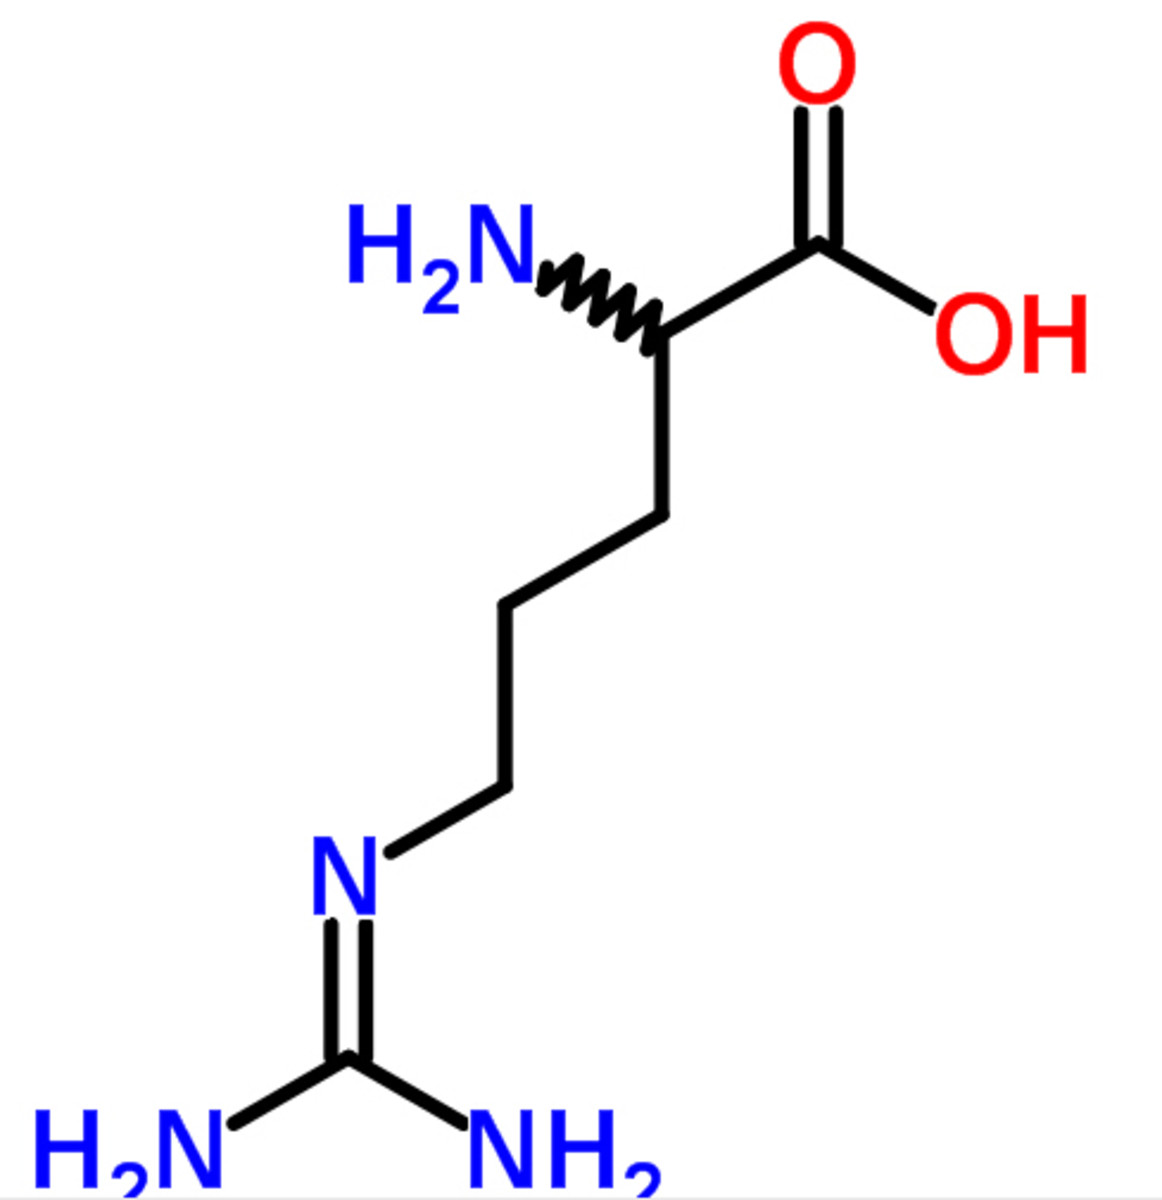 AAKG chemical structure (taken from ChemSpider.com)